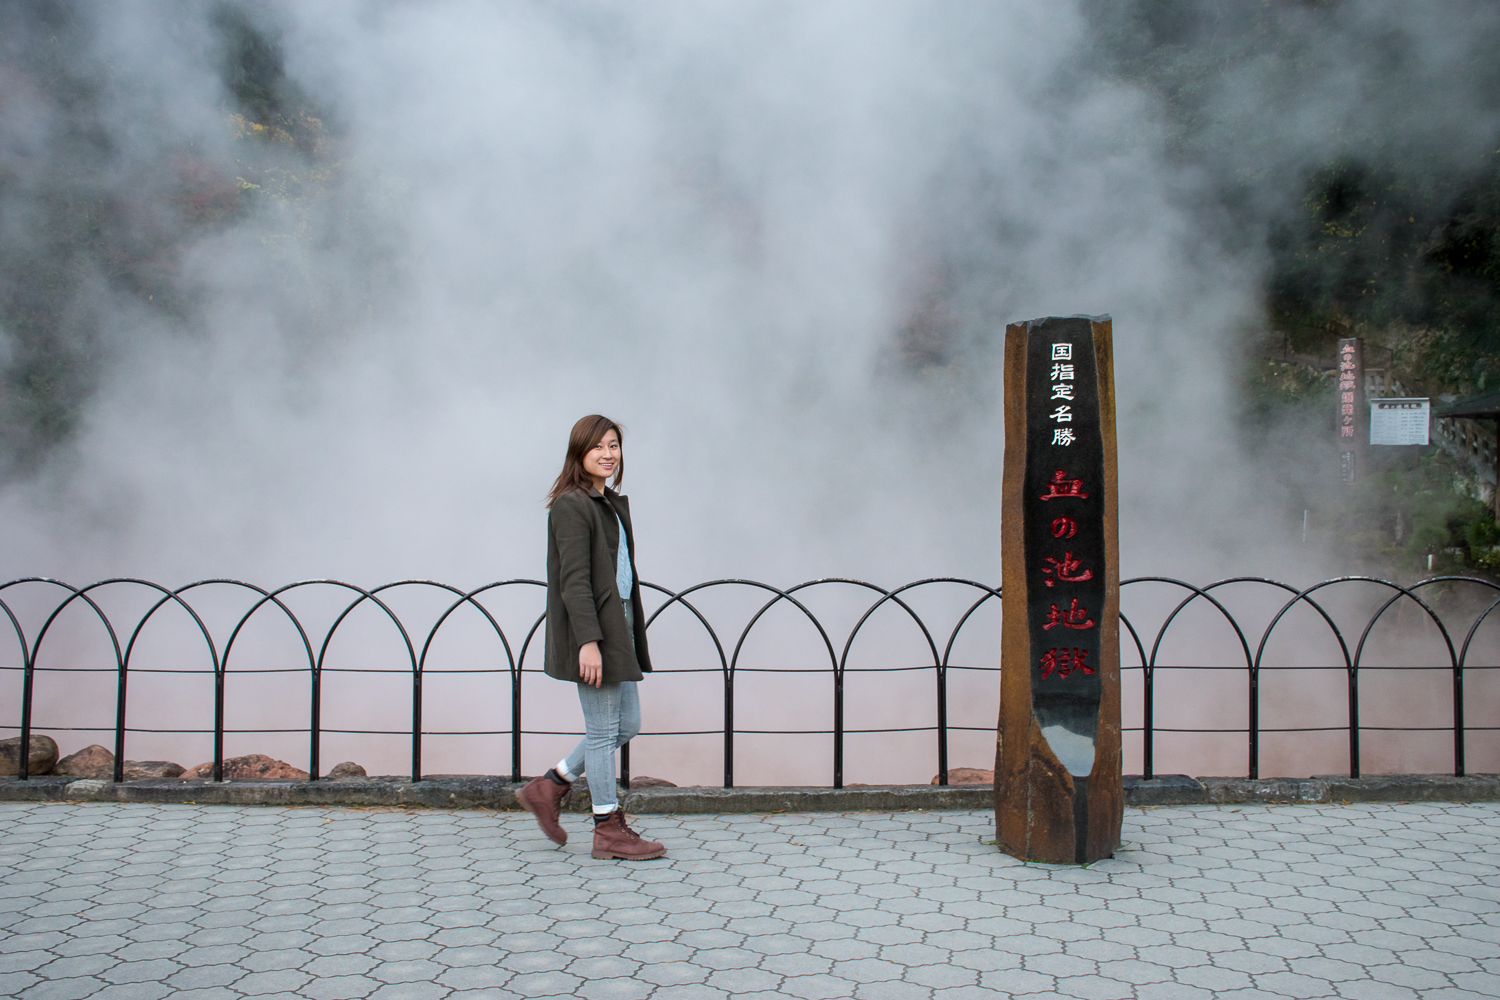 Beppu Hells hot spring steam and ootd